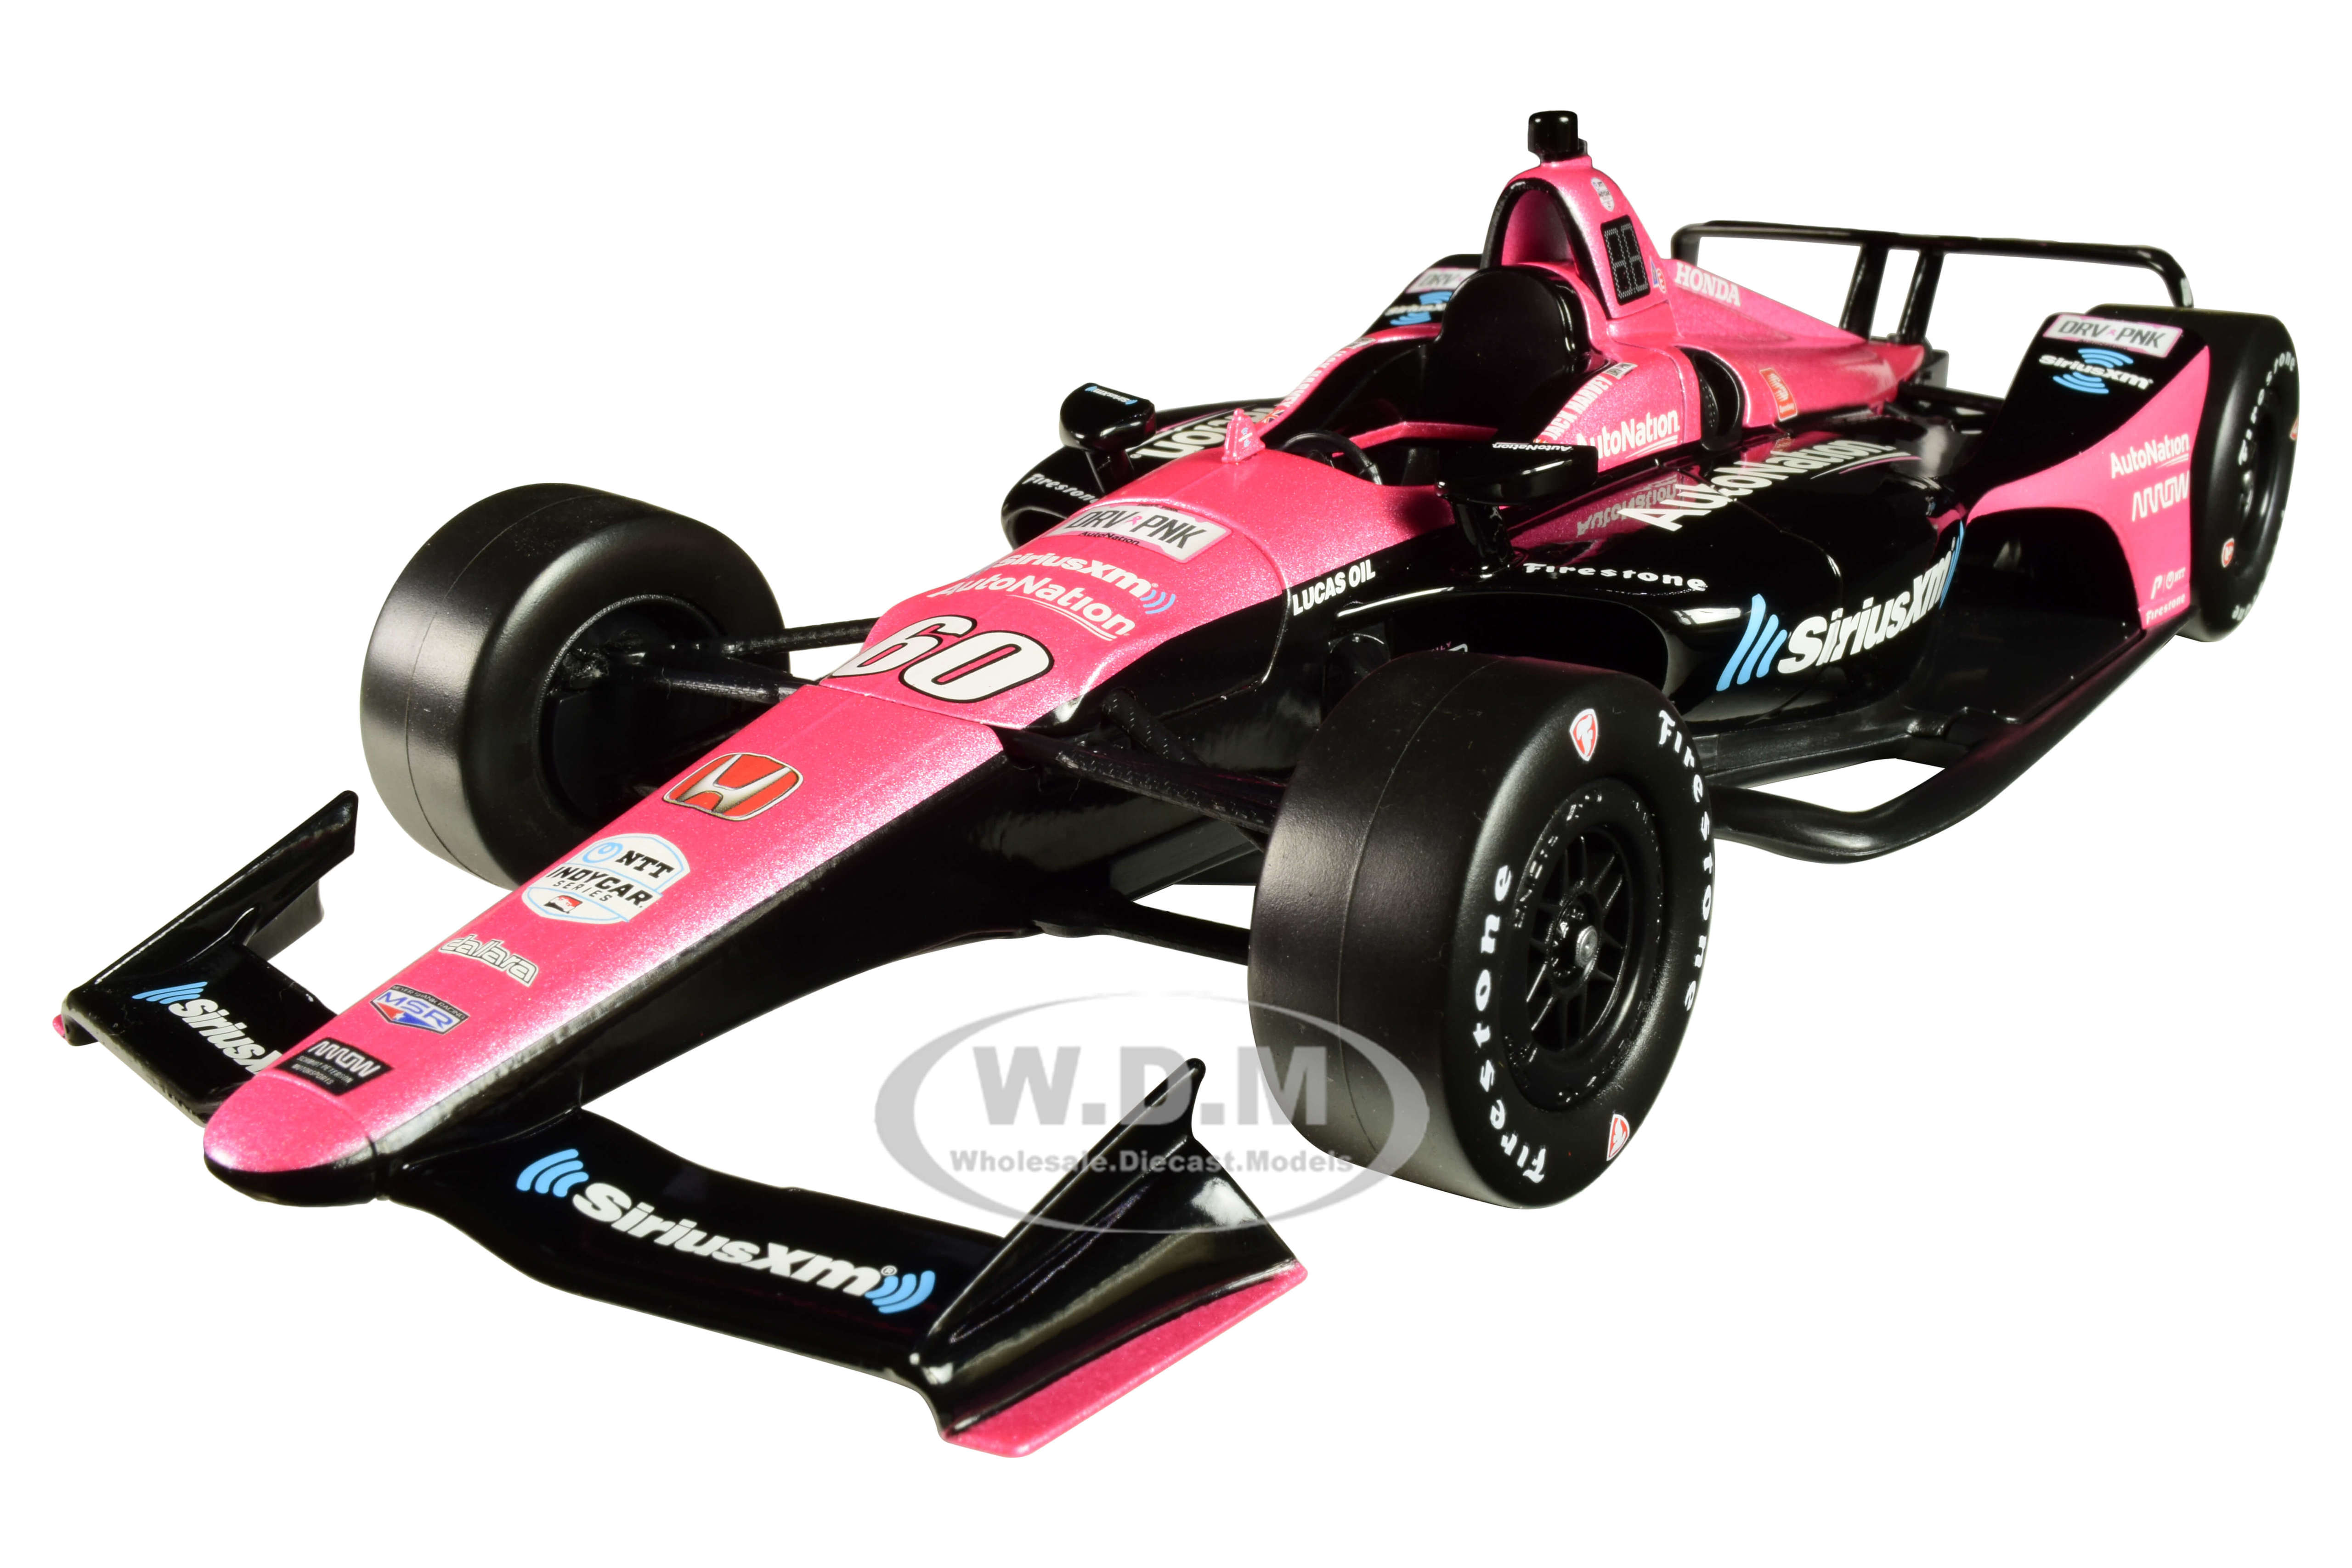 Honda Dallara Indy Car #60 Jack Harvey SiriusXM AutoNation Meyer Shank Racing with Arrow Schmidt Peterson Motorsports 1/18 Diecast Model Car by Greenlight - from $59.99